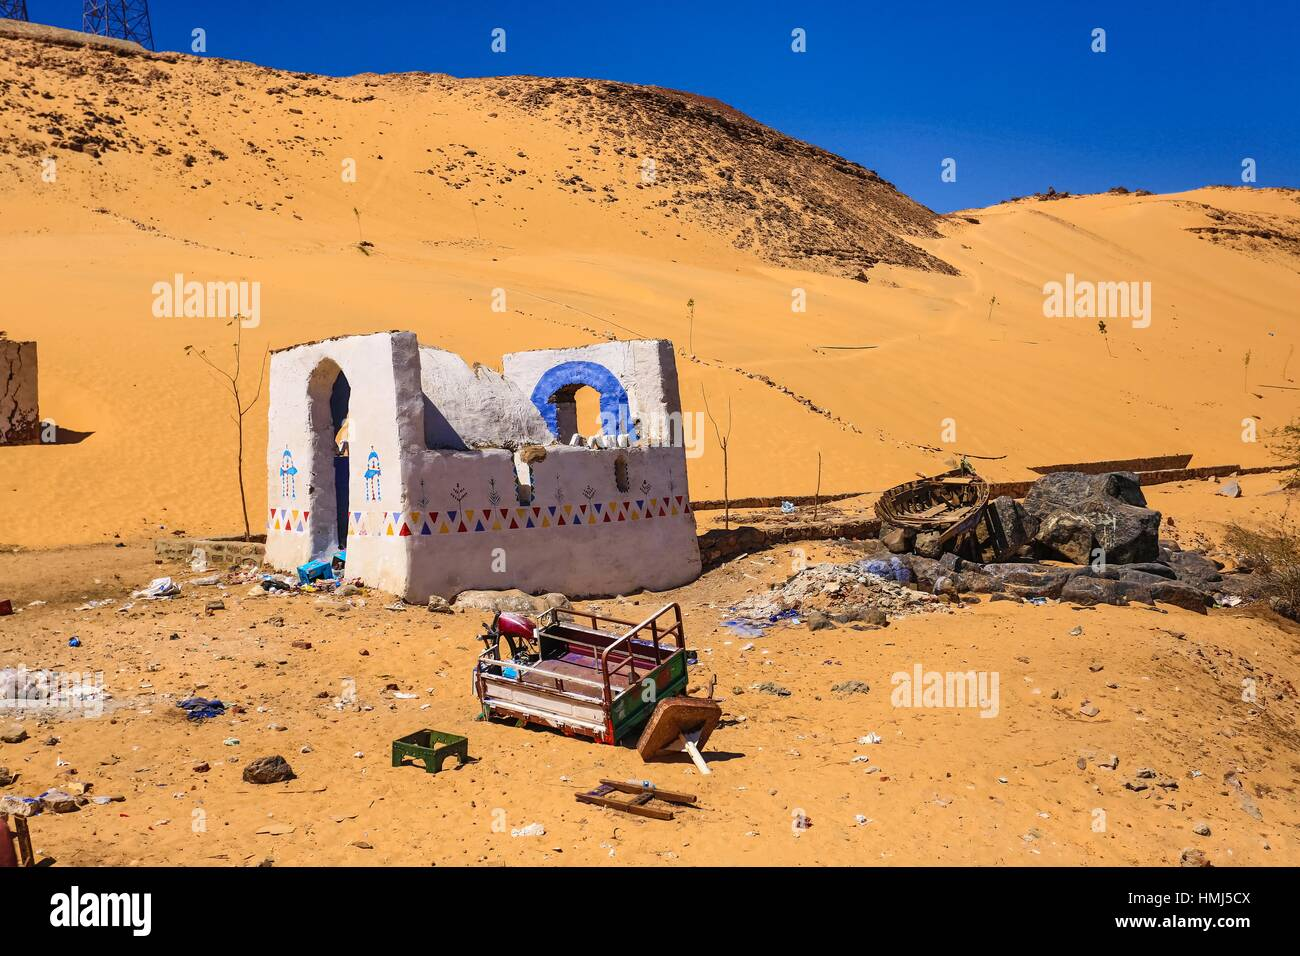 Nubia house, Upper Egypt, Africa - Stock Image